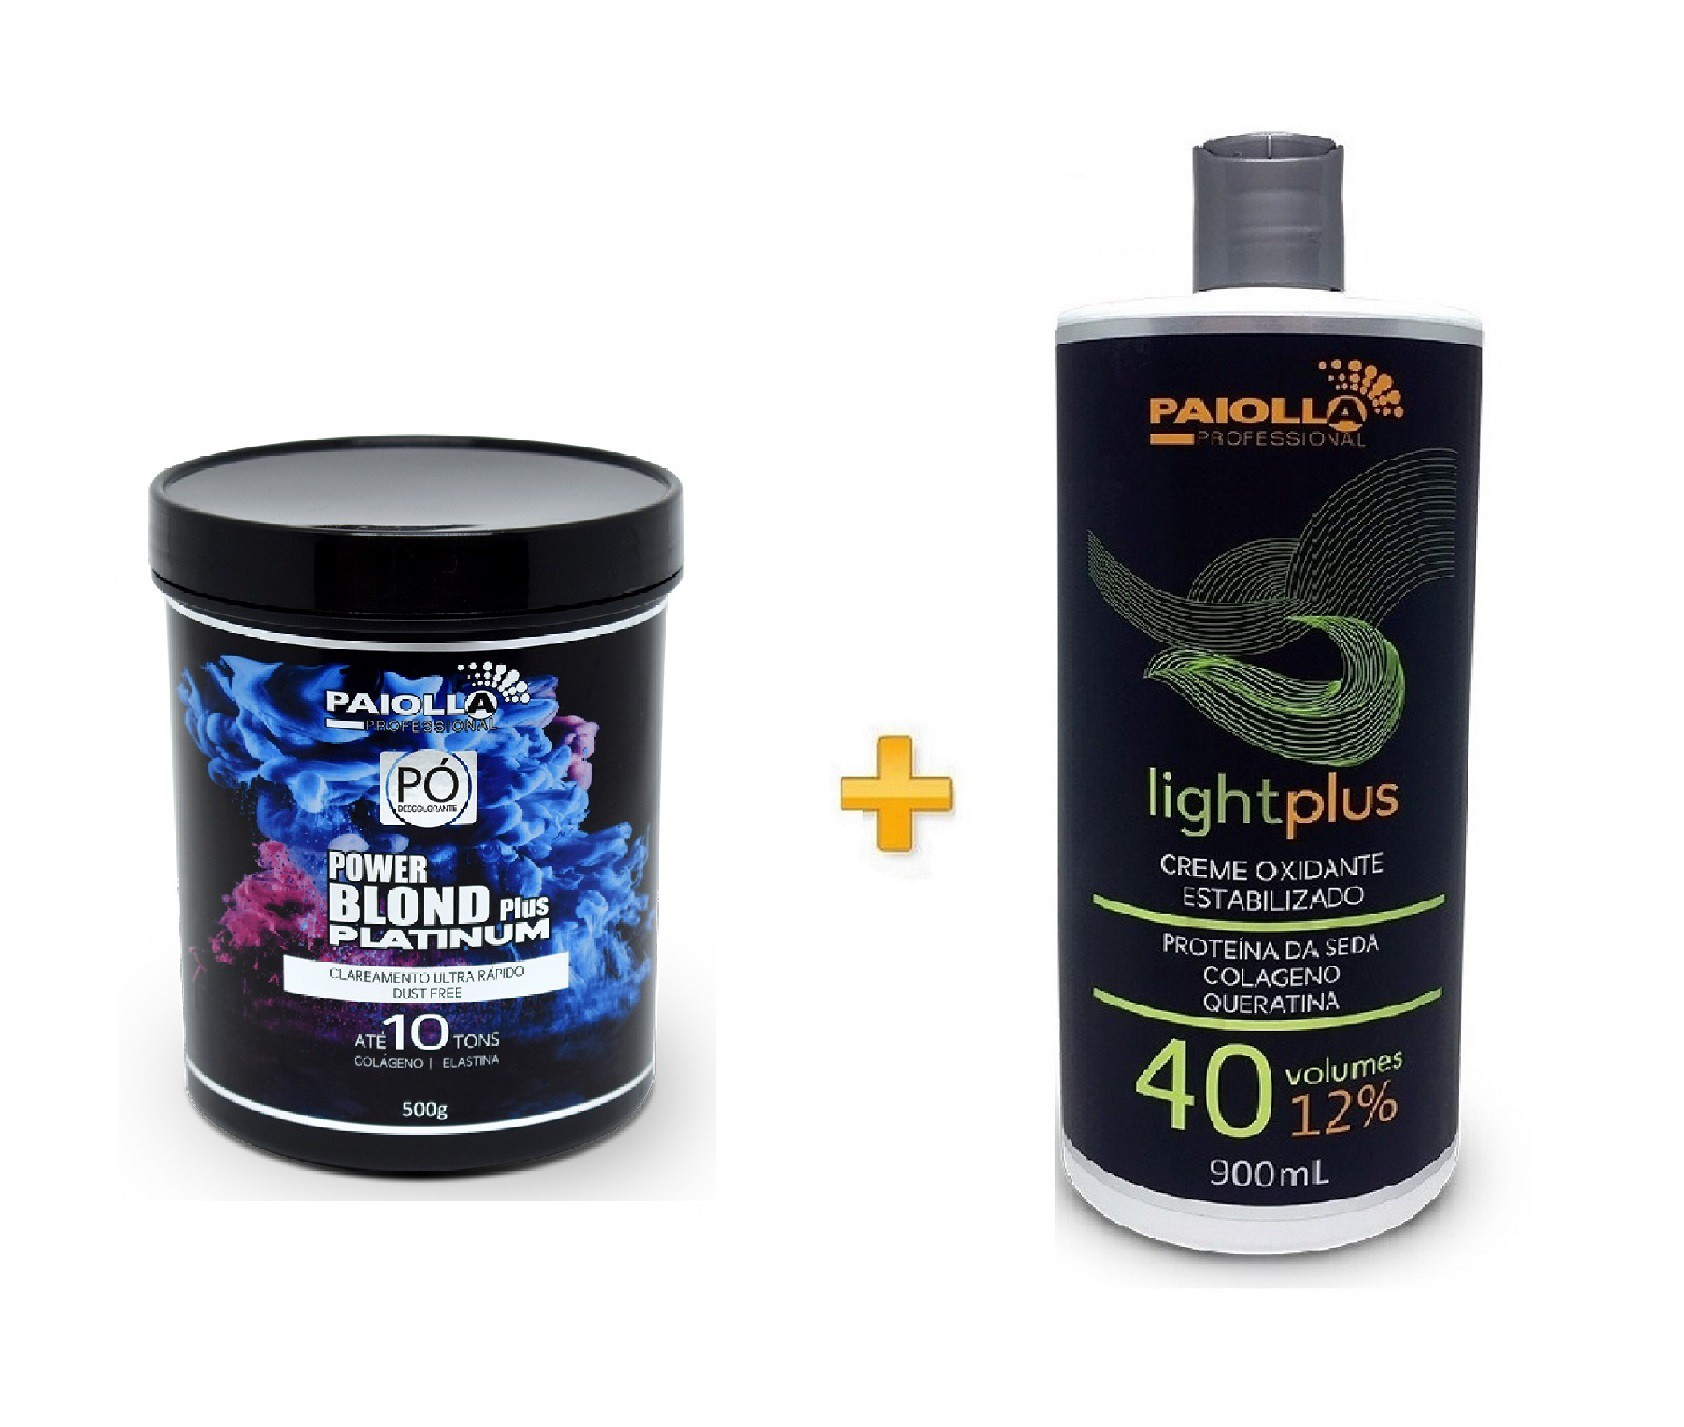 COMBO Pó Descolorante Power Blond Plus Platinum 500g + Creme Oxidante Estabilizado 40 volumes